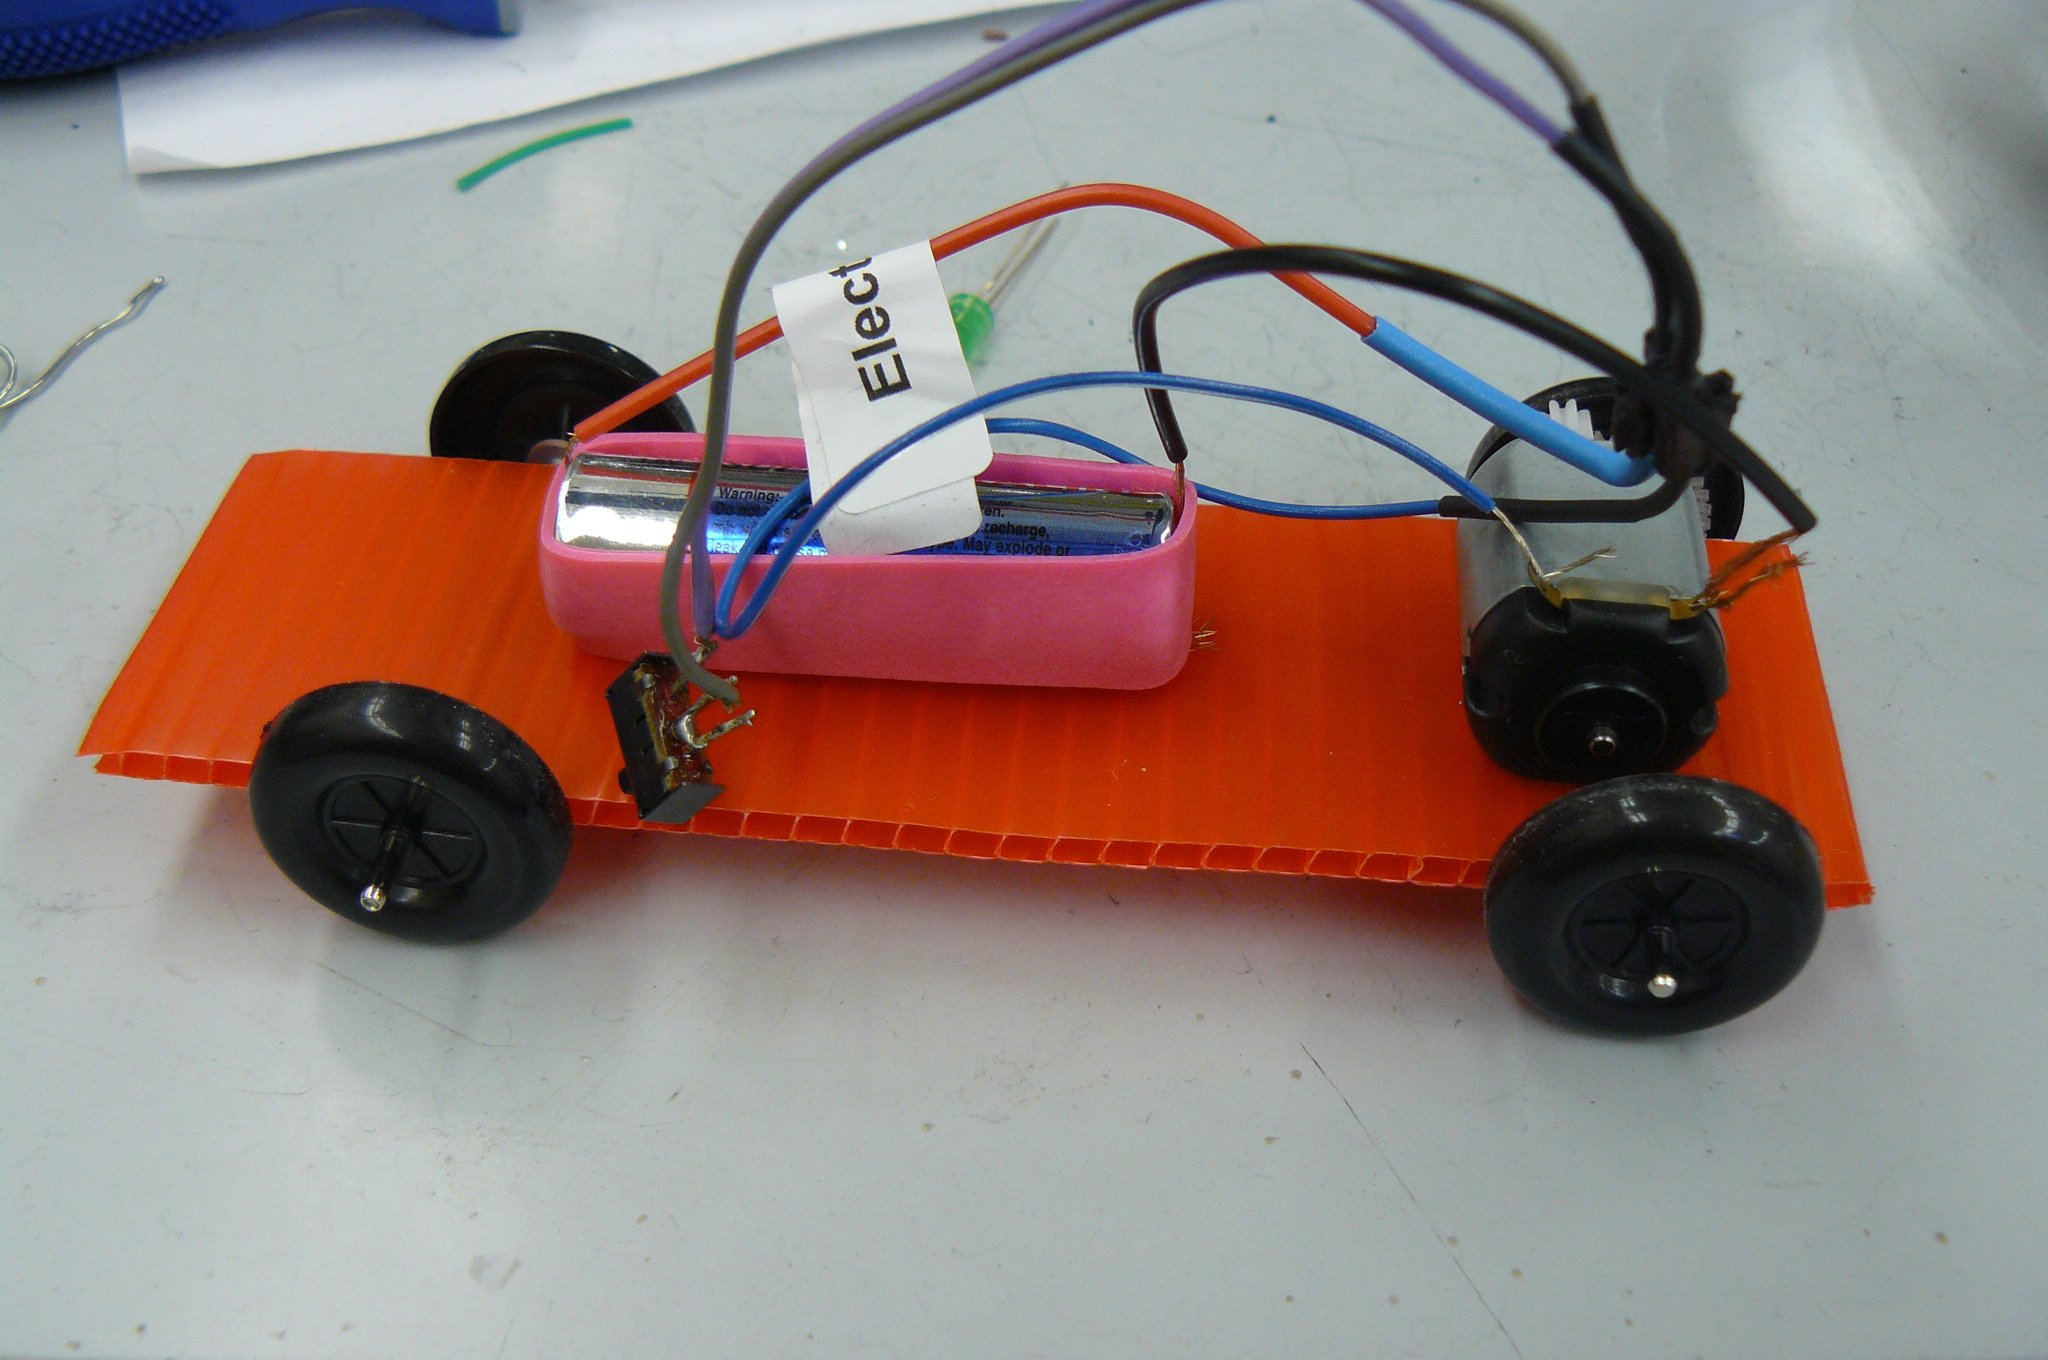 Rough prototype of a miniature car powered by a AA battery